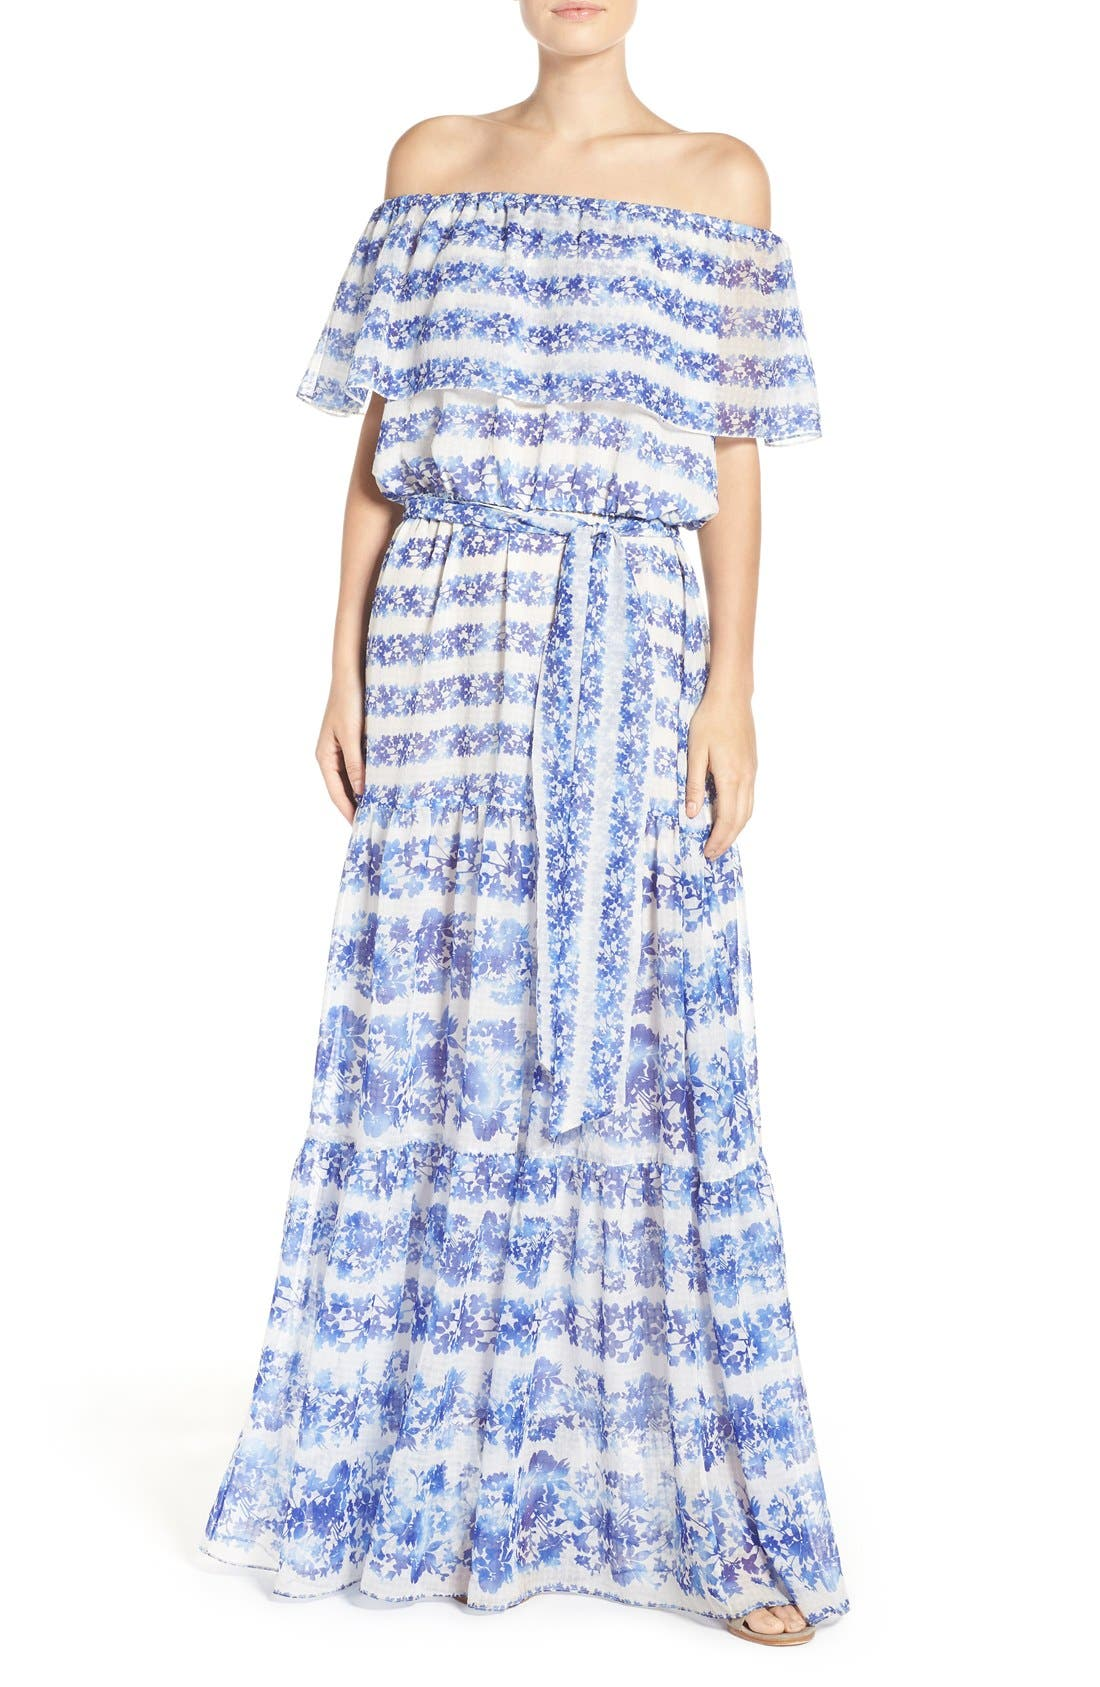 Alternate Image 1 Selected - Eliza J Blouson Maxi Dress